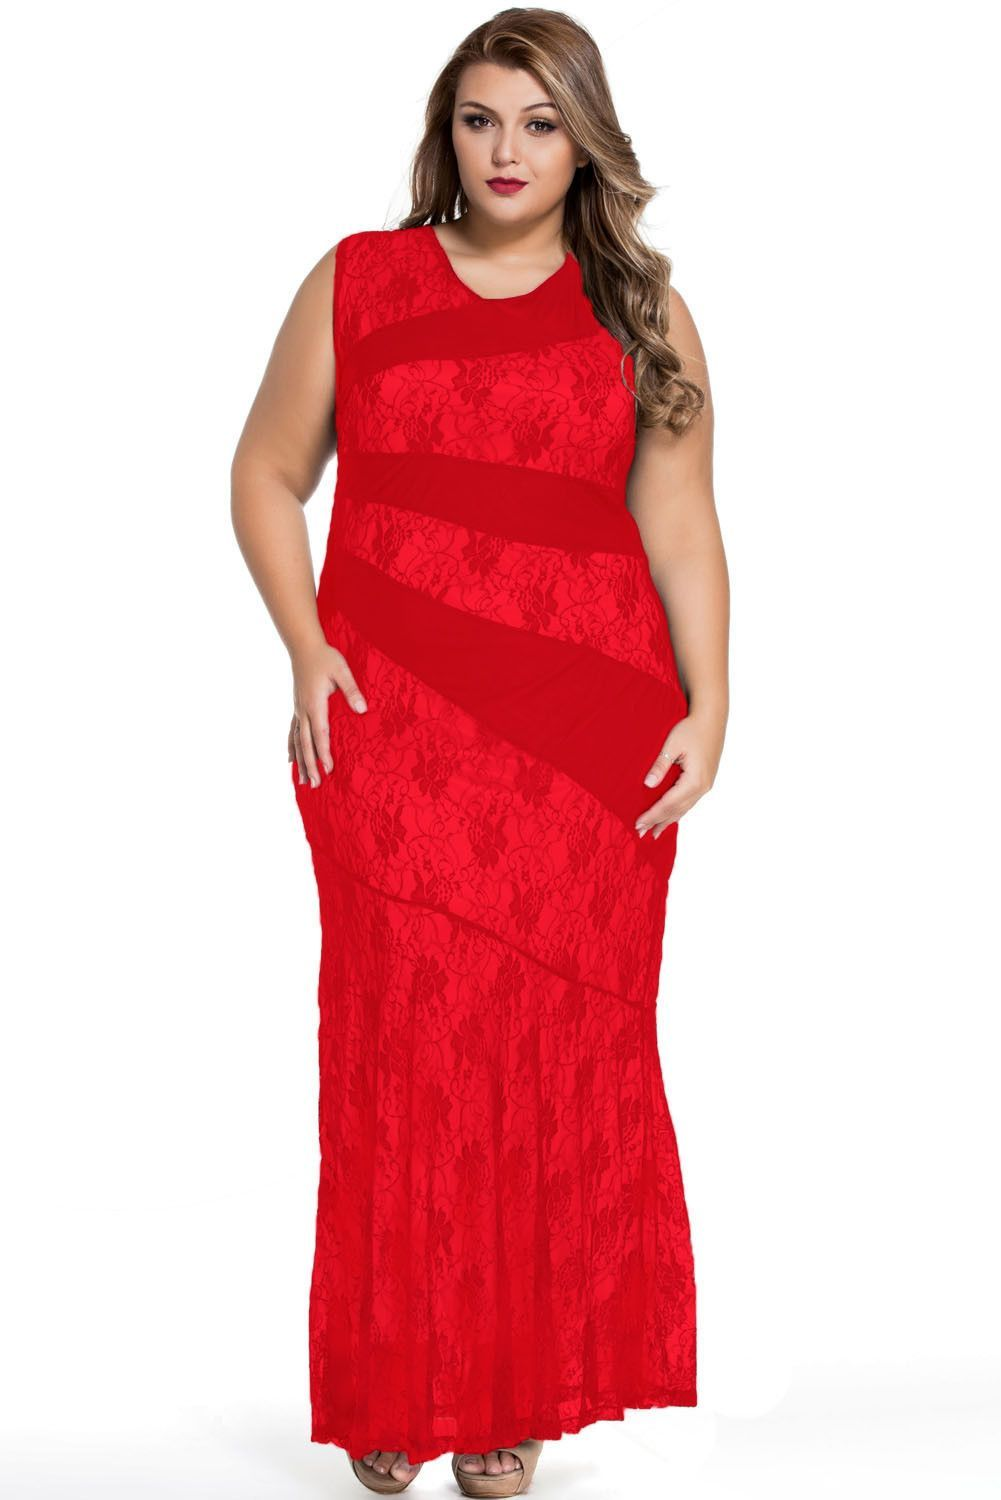 Red stylish lace splice plus size mermaid prom dress products